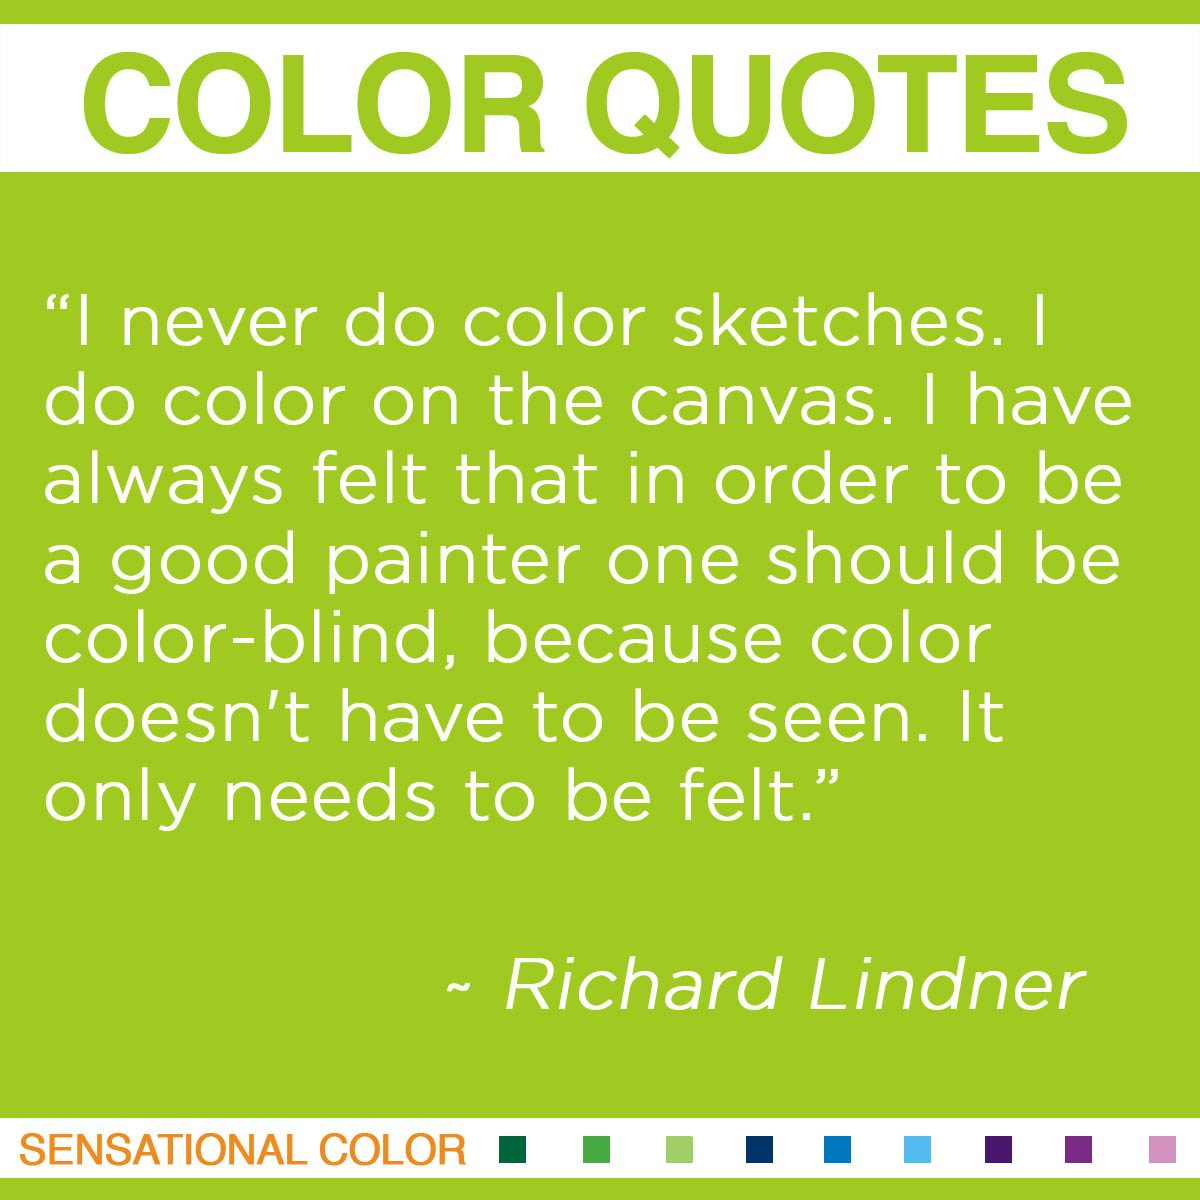 """""""I never do color sketches. I do color on the canvas. I have always felt that in order to be a good painter one should be color-blind, because color doesn't have to be seen. It only needs to be felt."""" - Richard Lindner"""